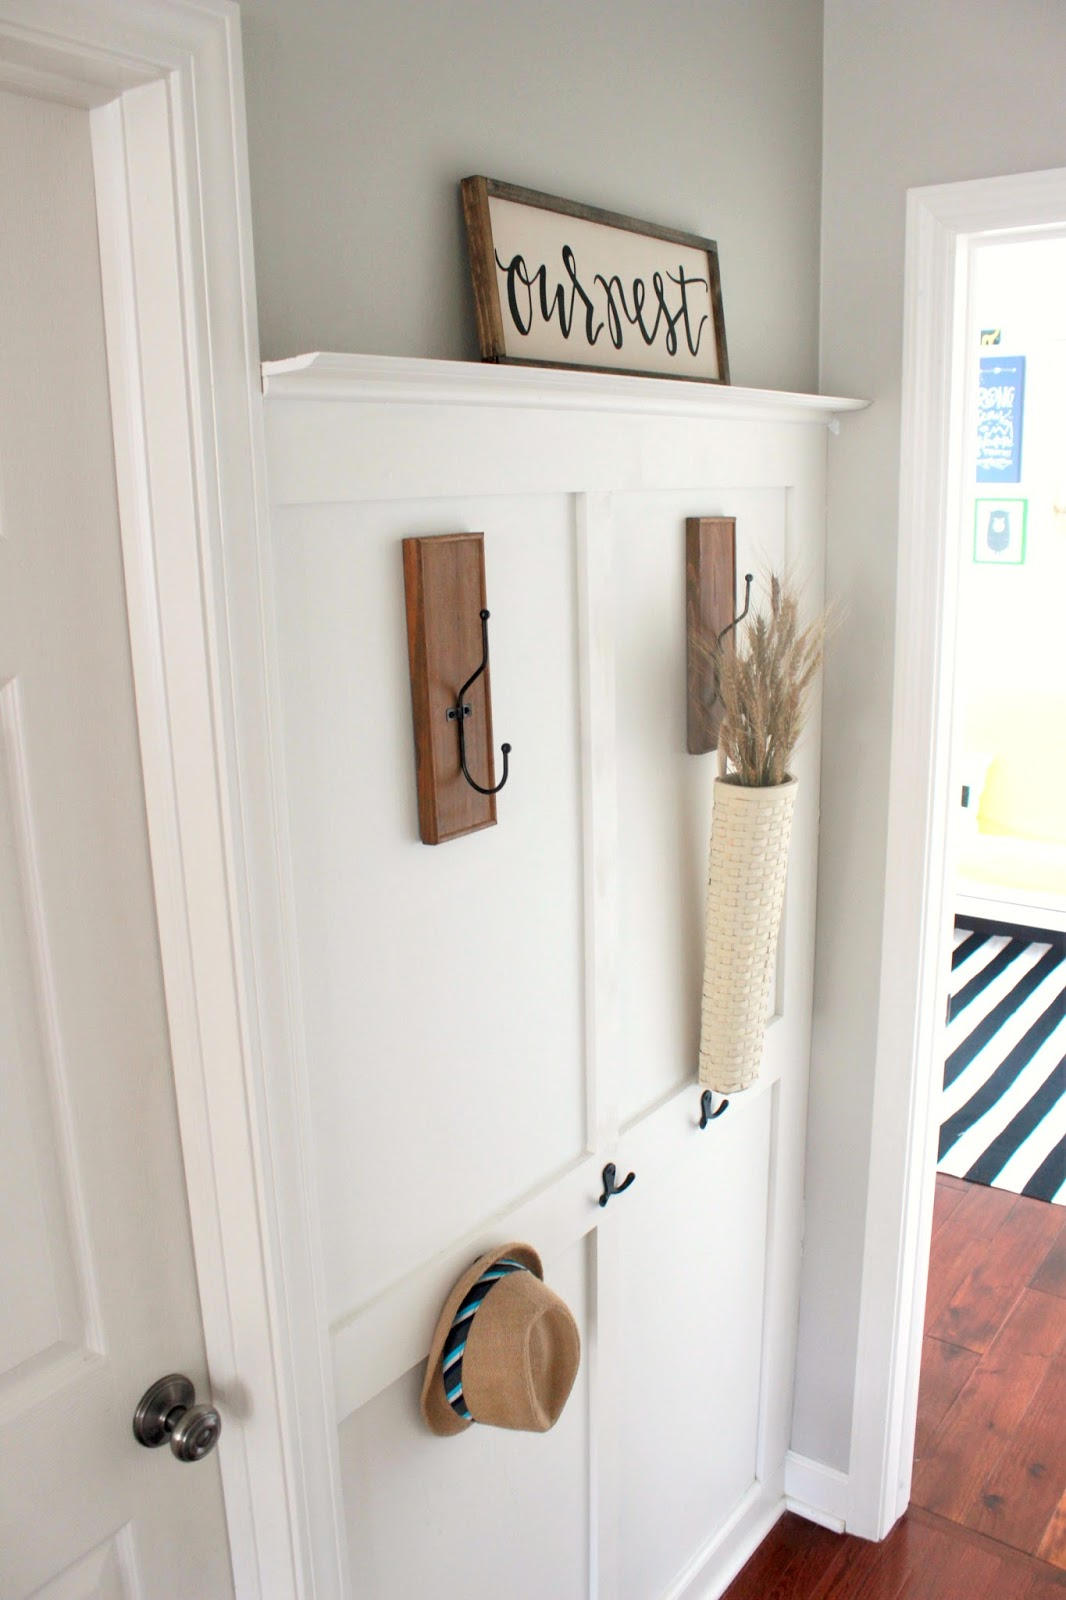 How to Build a Board and Batten Coat Rack Wall - Delightfully Noted